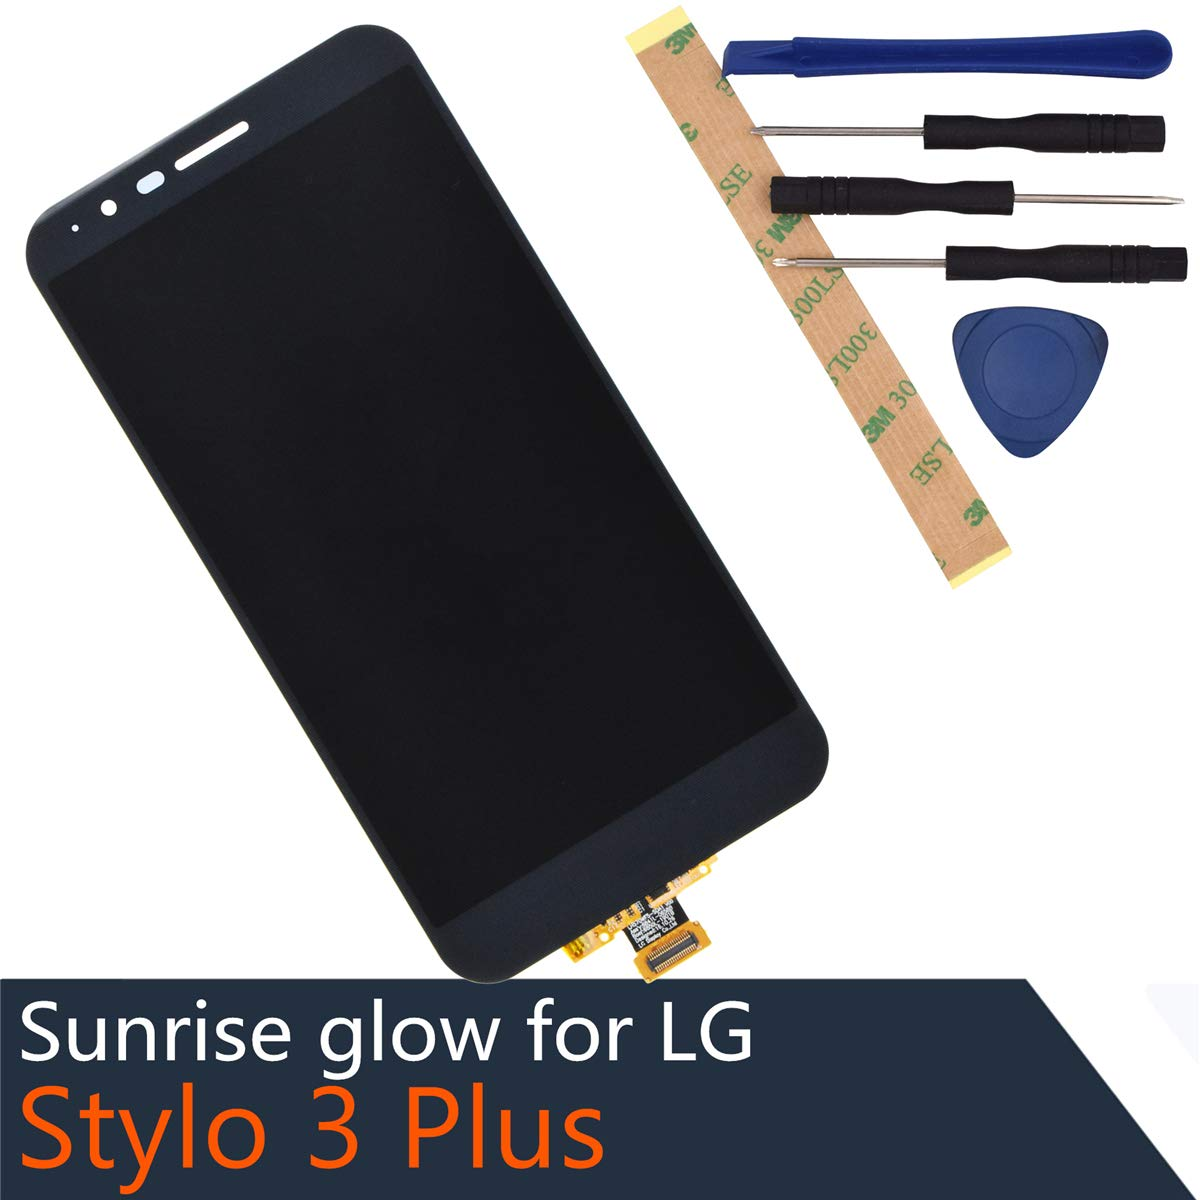 Full LCD Display Touch Screen Digitizer Assembly Replacement for LG Stylo 3 Plus with Frame Adhesive [ Without Frame ]